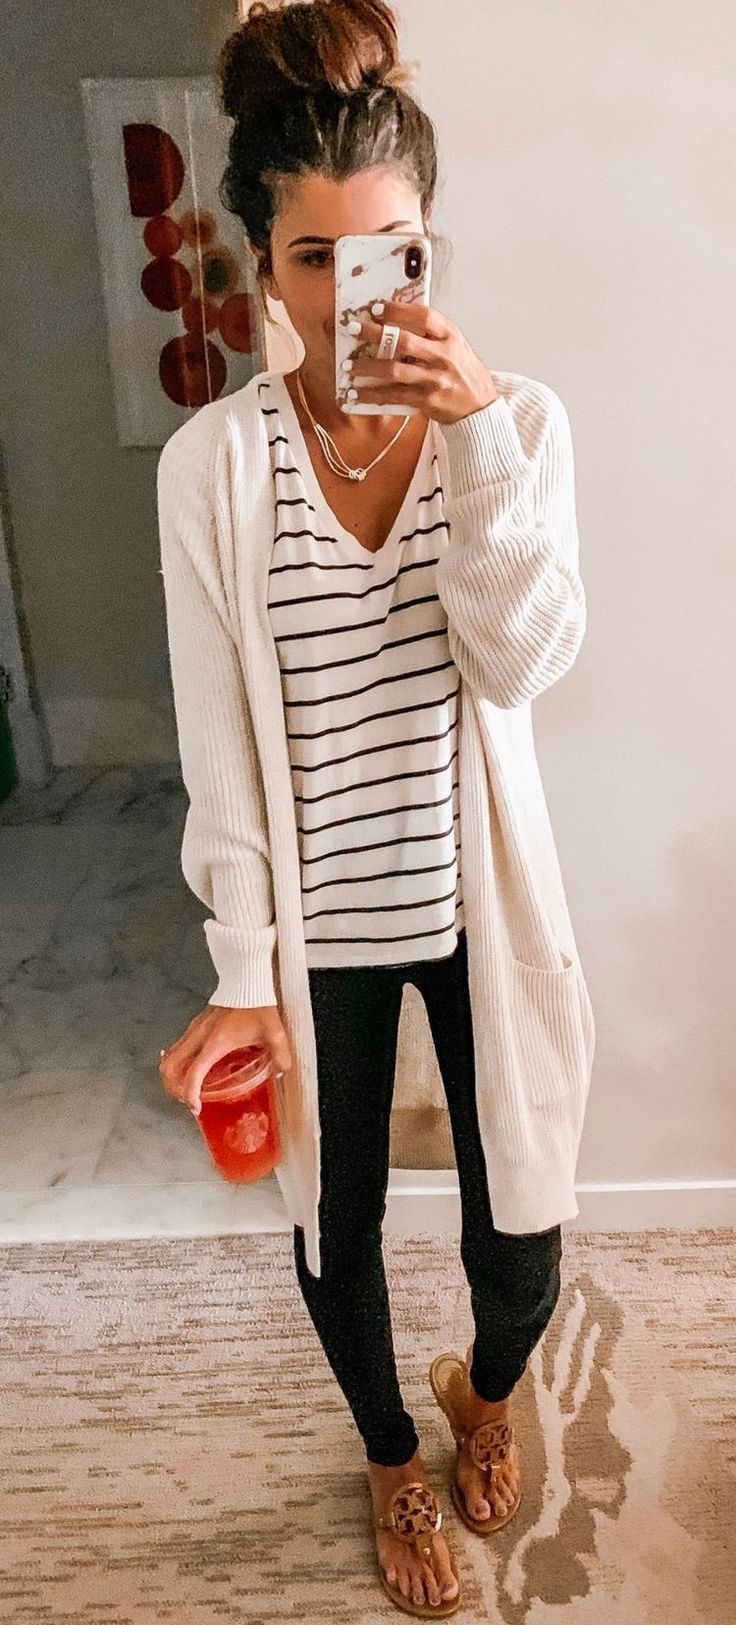 30 Easy Fall Outfit Ideas You can Copy Right Now Ssup ladies. We know it kinda